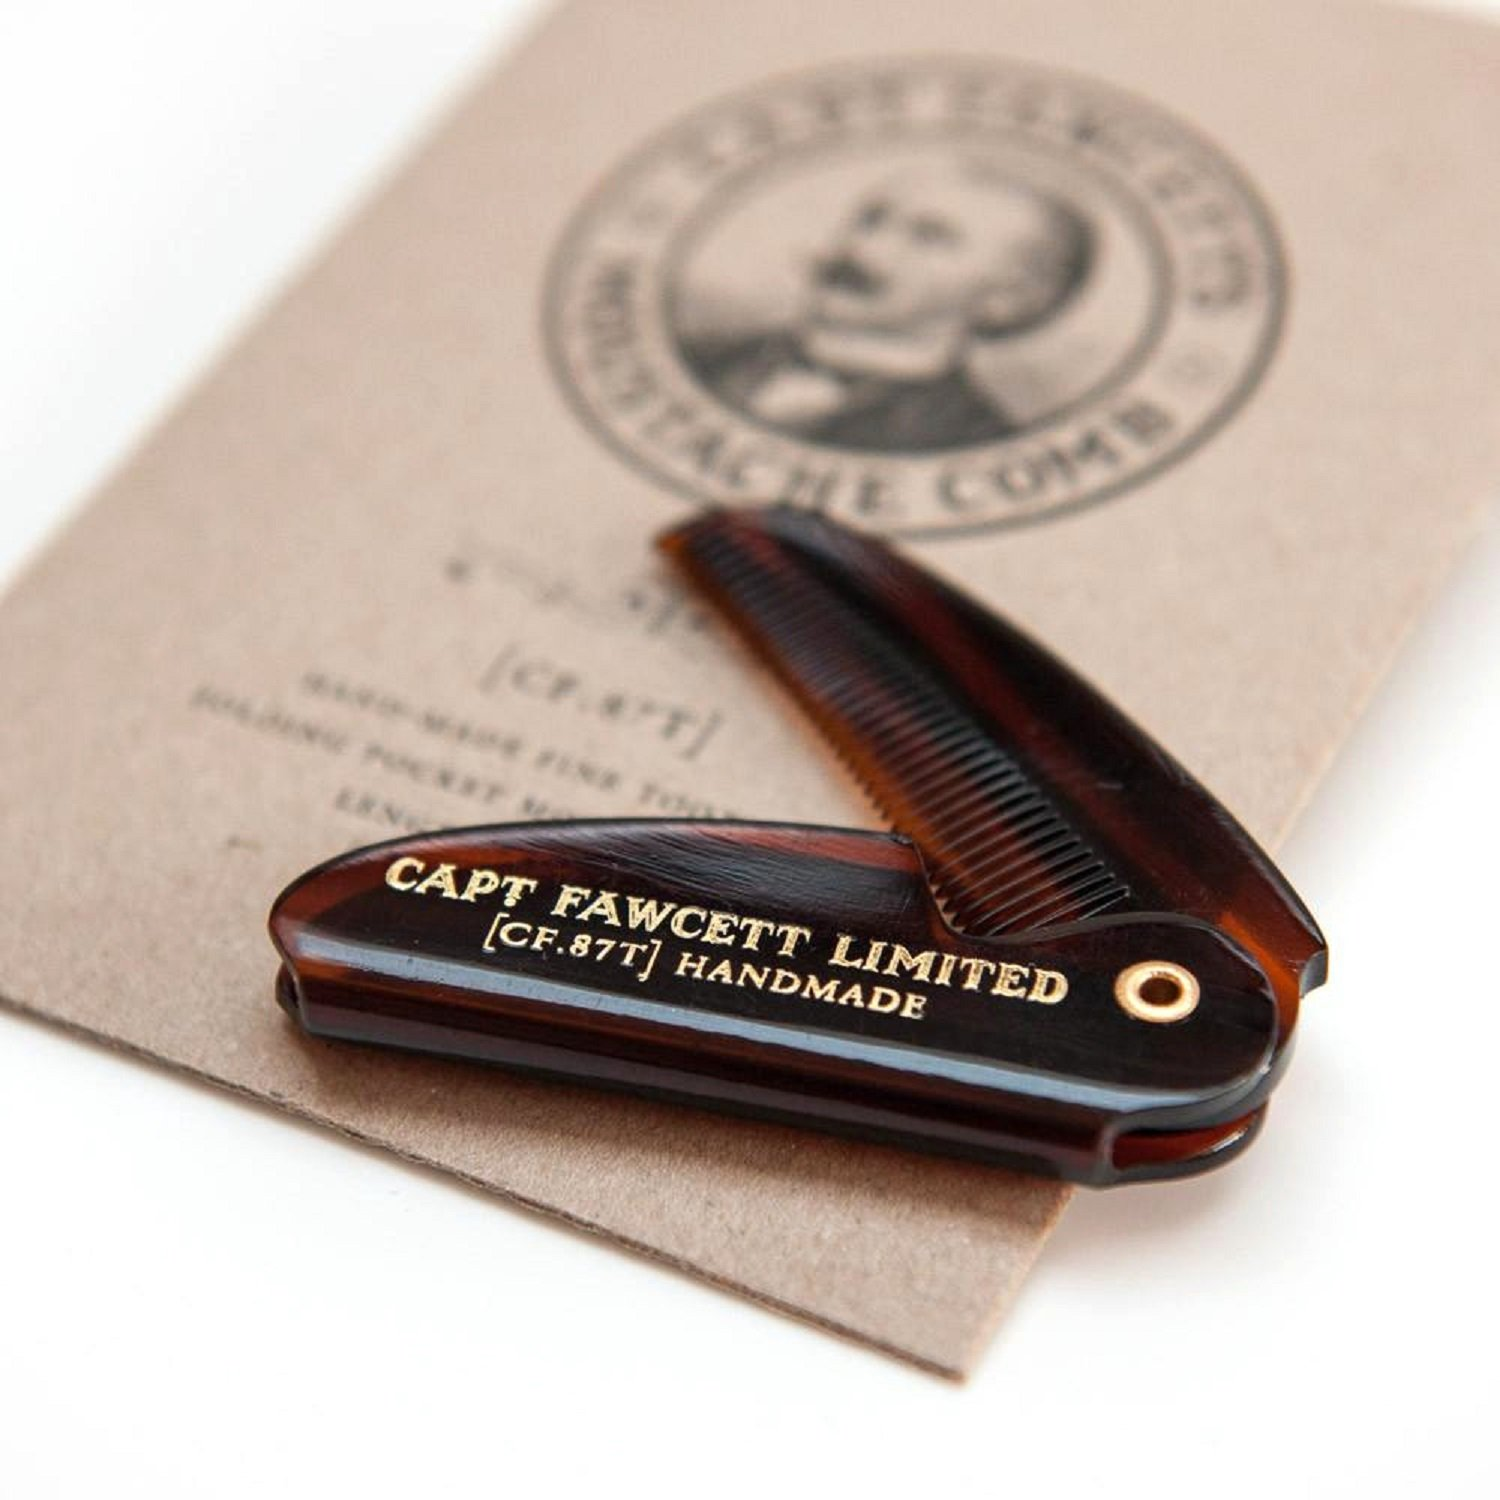 Captain Fawcett's Folding Pocket Moustache Comb - CF.87T - Made in England